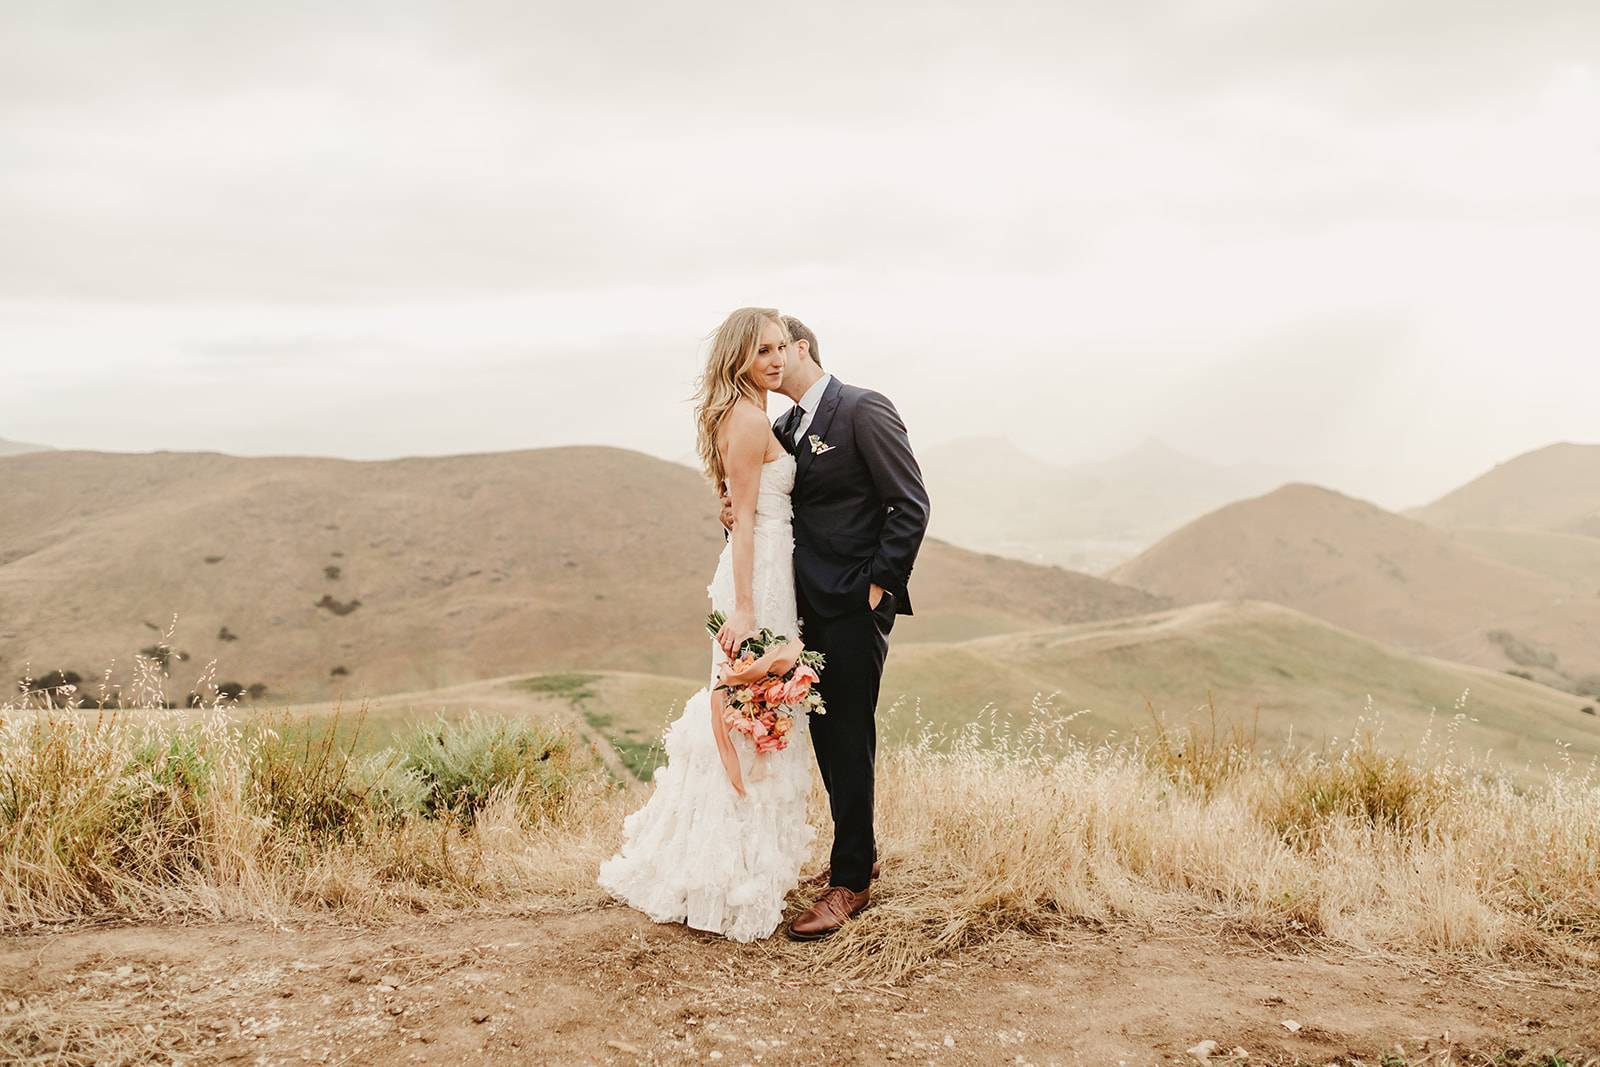 Wedding Couple Shoot with Bright Florals at Rustic La Cuesta Ranch | The Wedding Standard